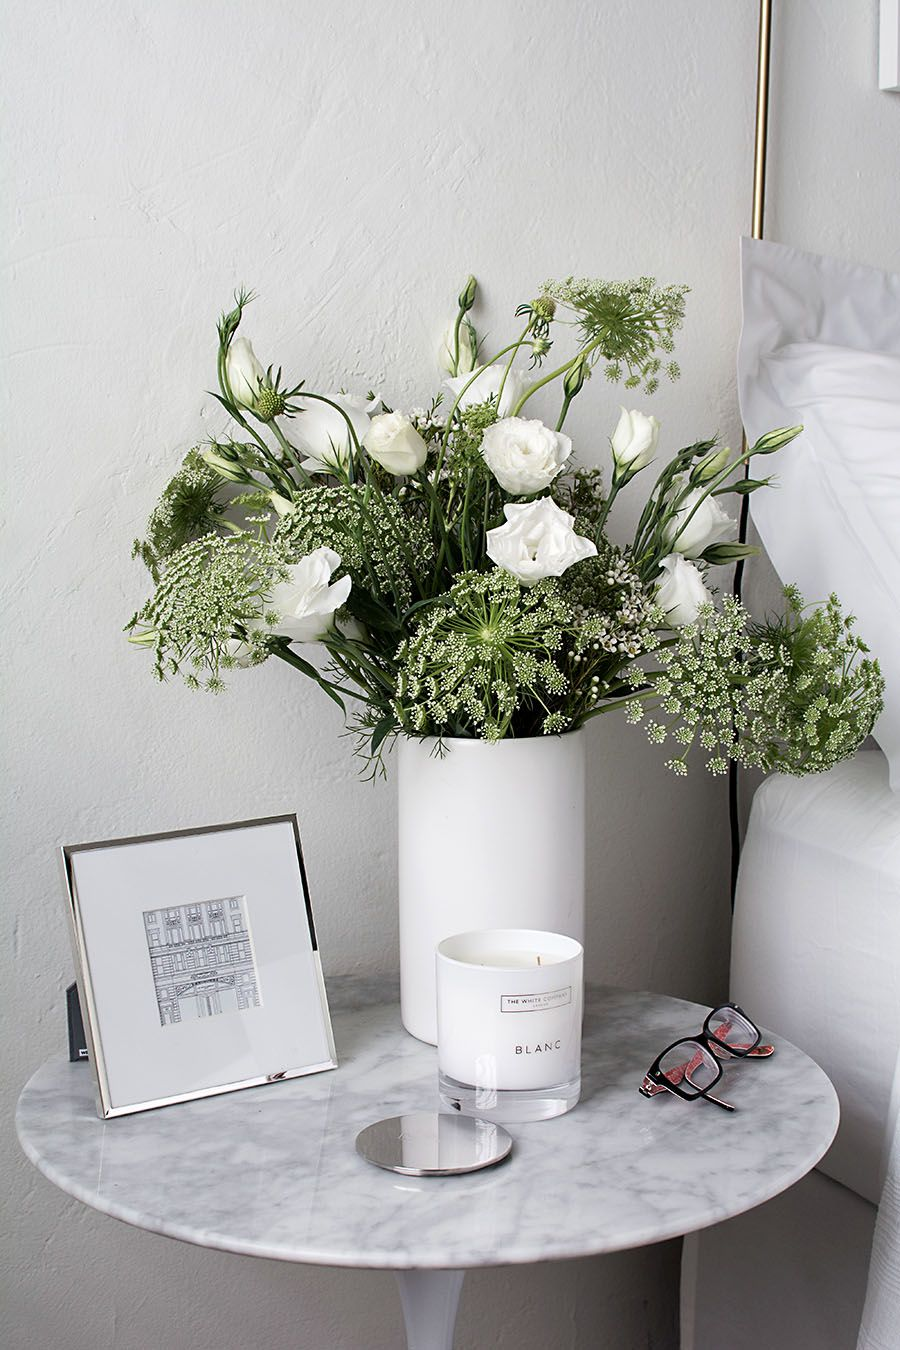 DIY Home and Design, bed side night stand table decor for